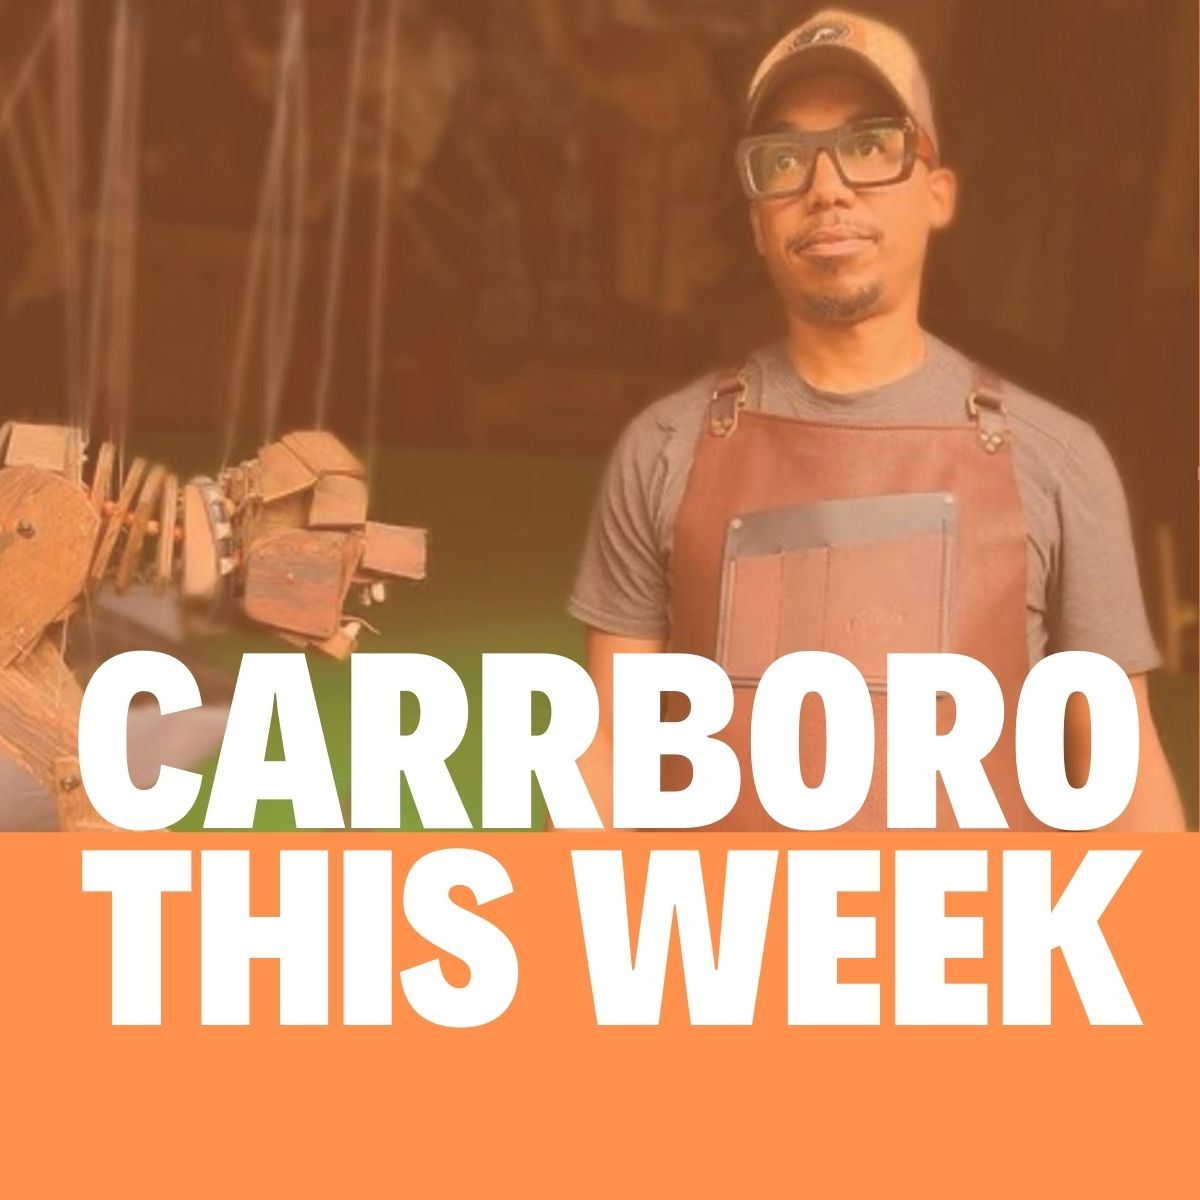 Carrboro This Week Feb 26